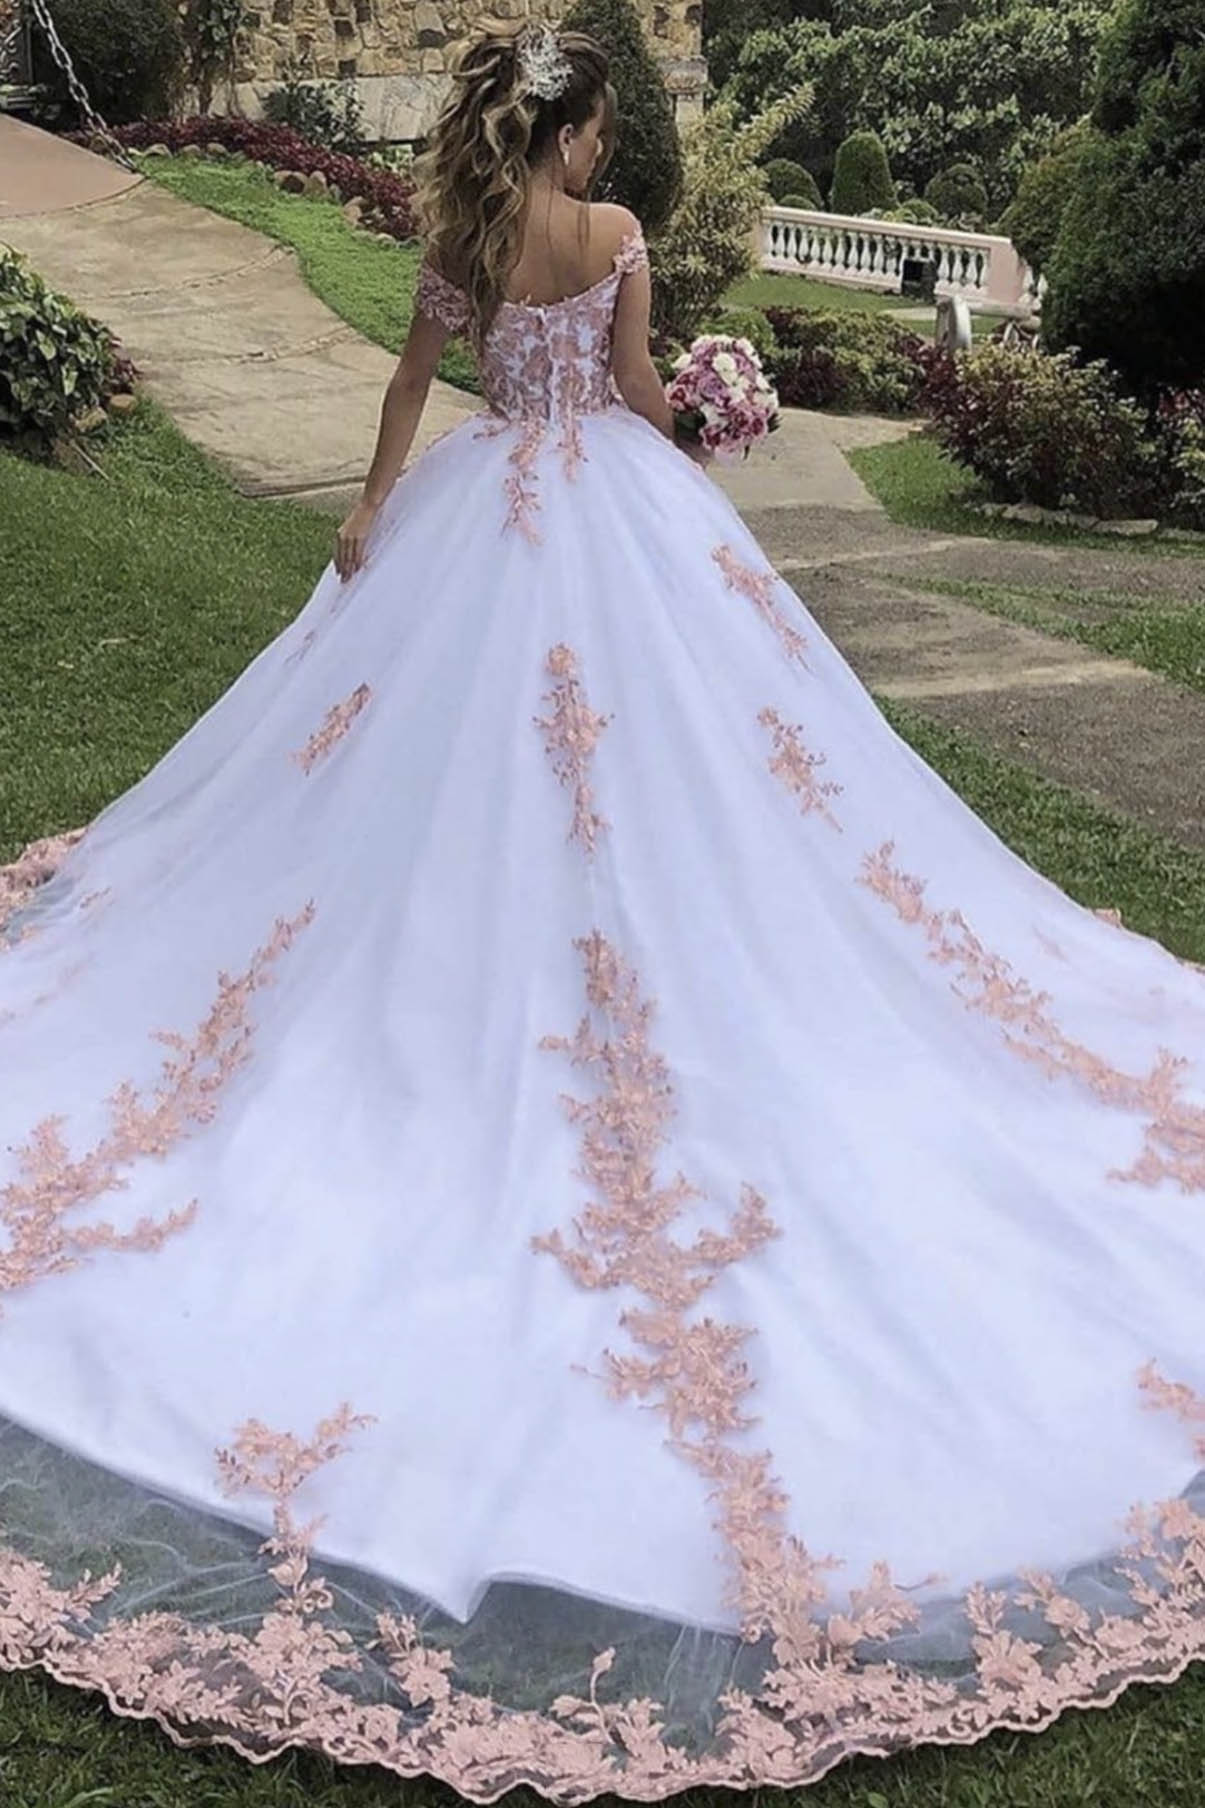 White lace long ball gown dress formal dress